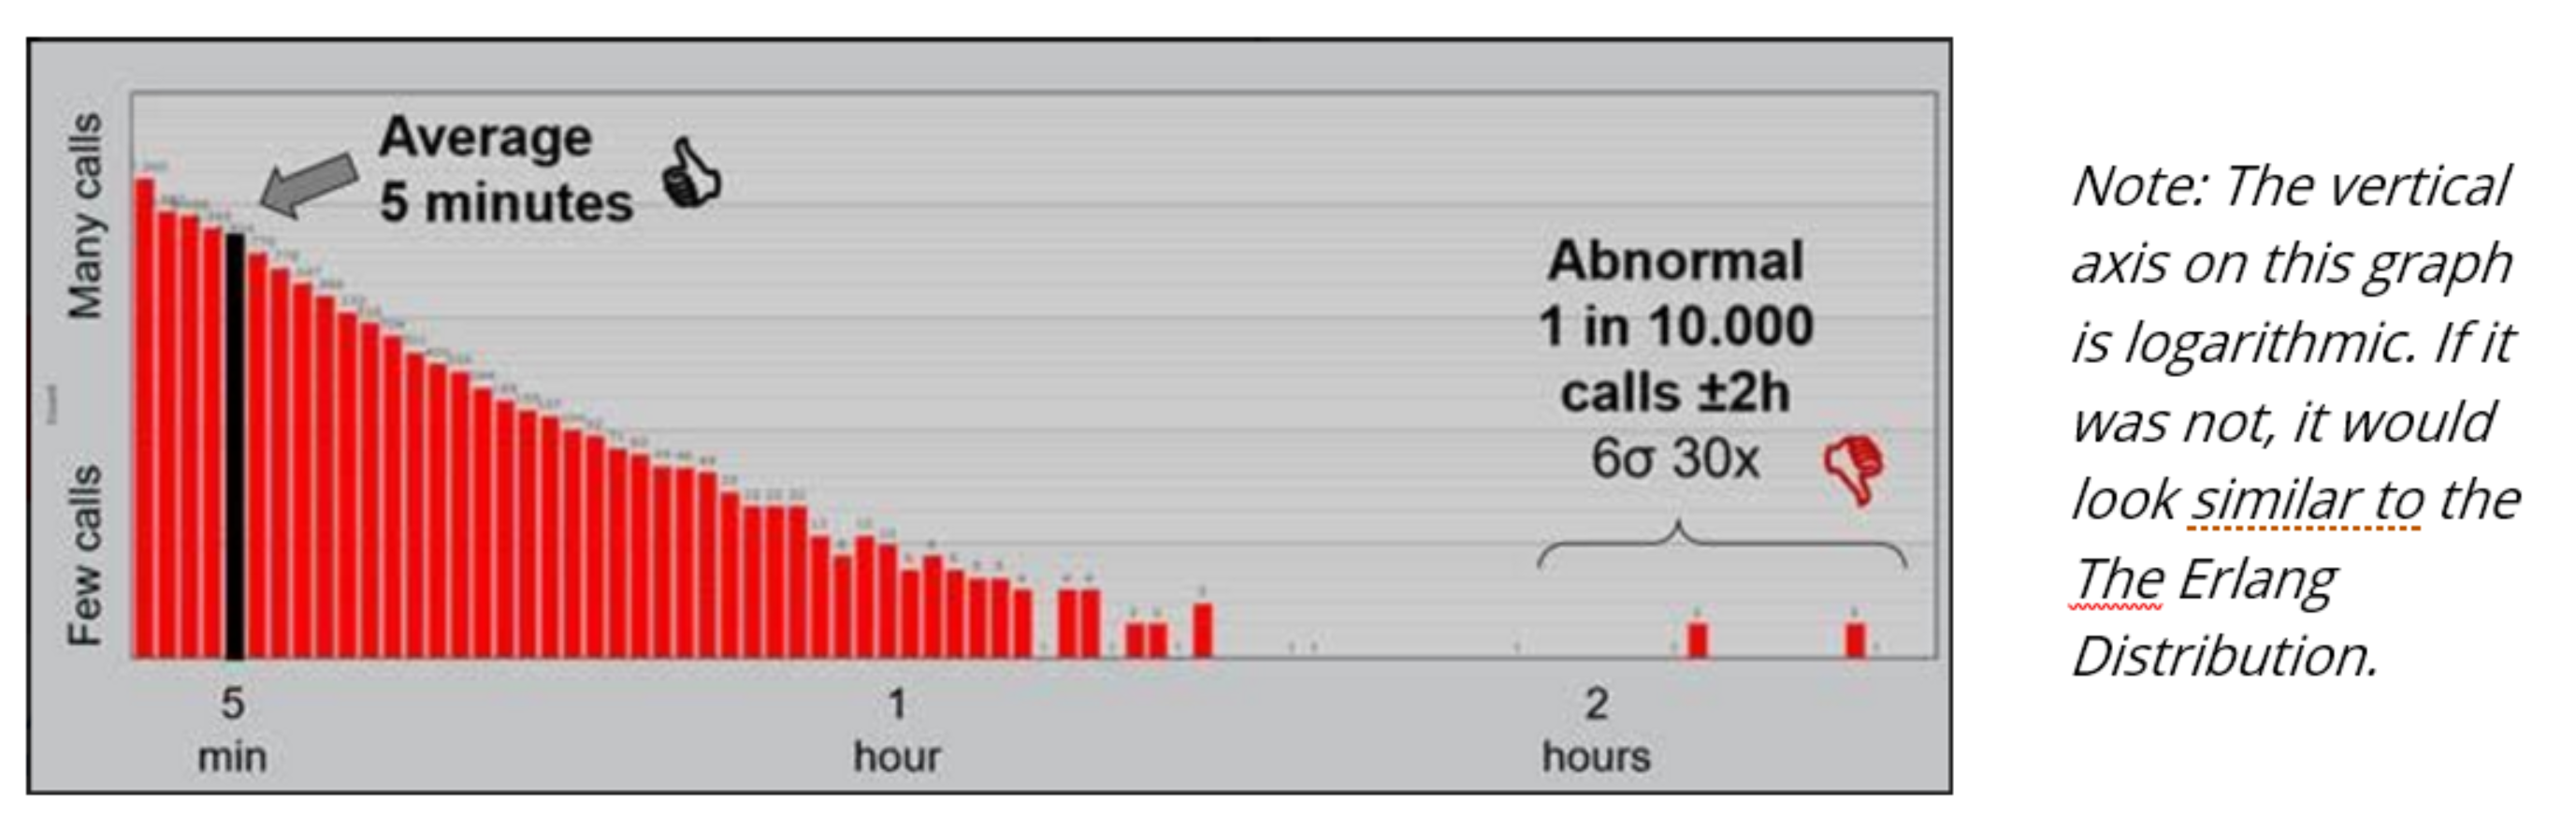 A graphic created by CARE4CC, showing a skewed distribution of call length